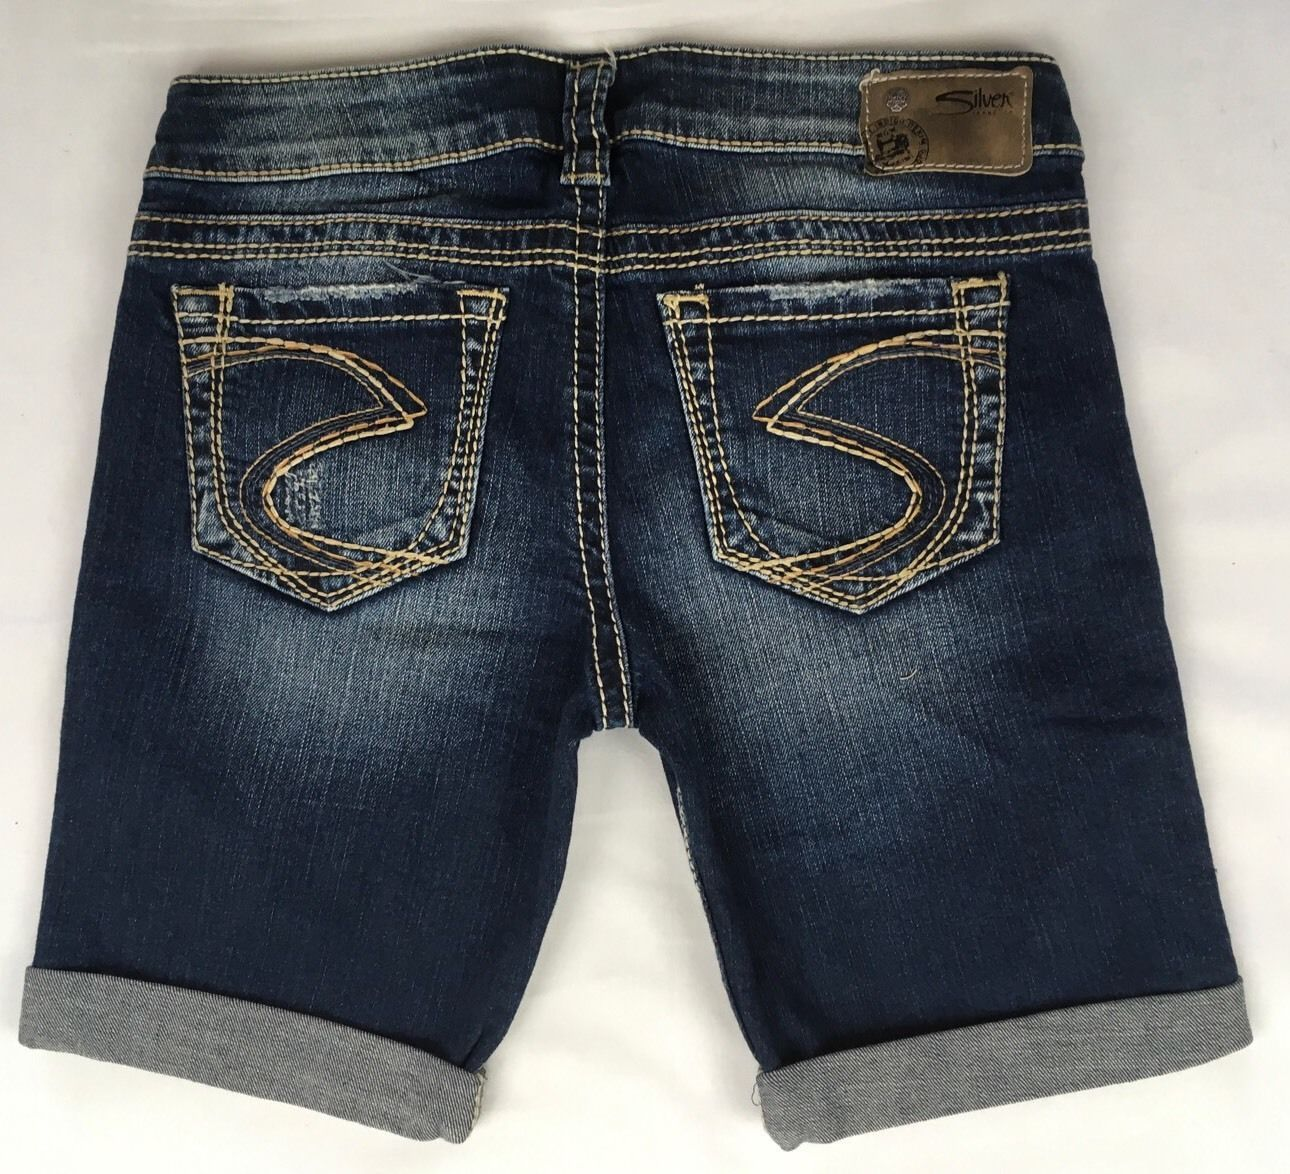 c6c99426 SILVER JEANS Sale New Buckle Low Rise Frances Stretch Jean Denim Shorts 28  31